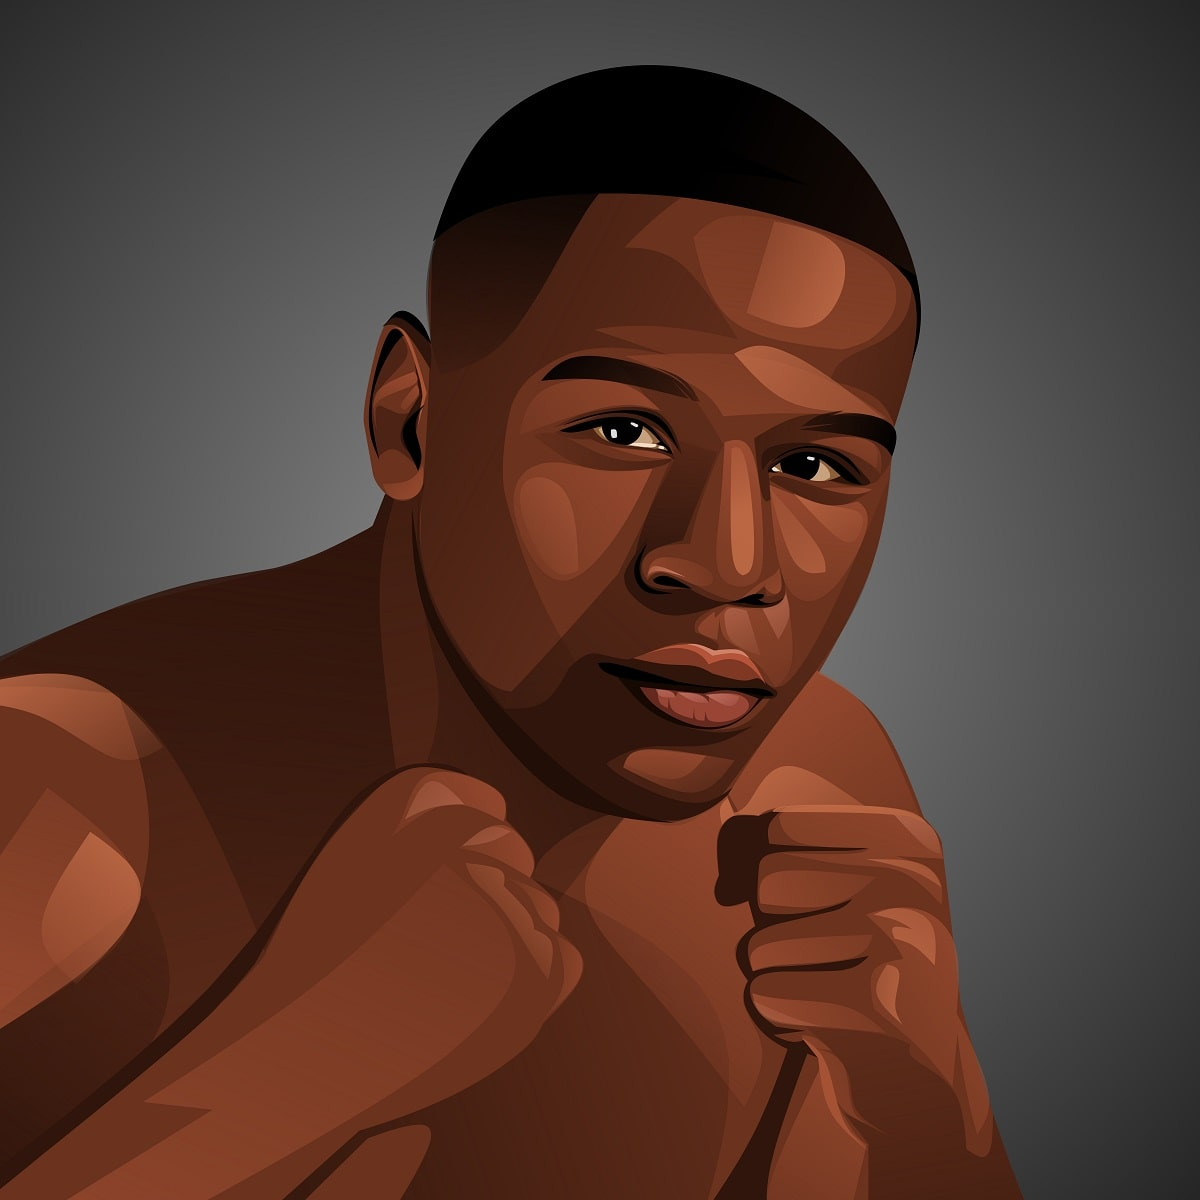 floyd mayweather © Inspirationfeed. All rights reserved.